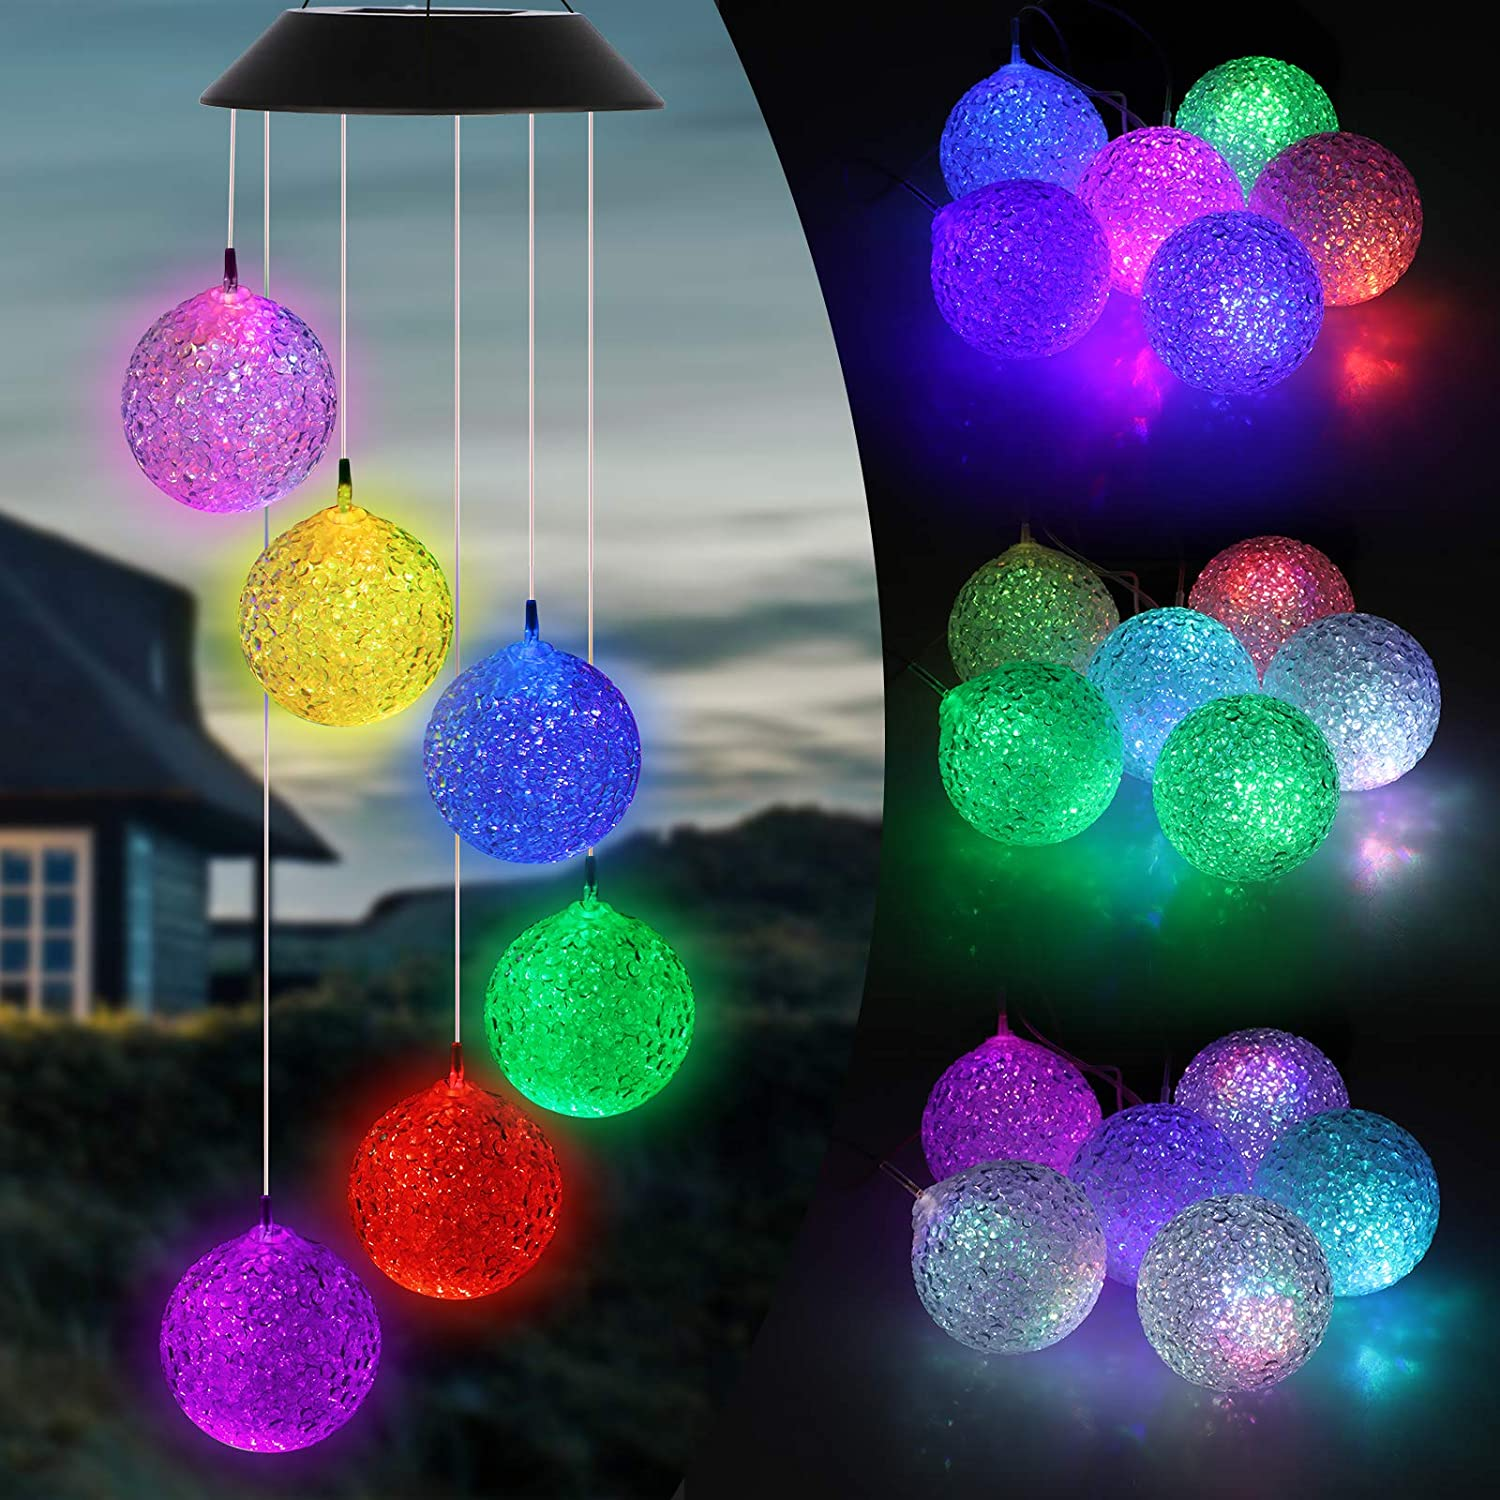 Solar Wind Chimes Outdoor, Color Changing Solar Ball Wind Chimes, Solar Powered String Lights Waterproof LED Decorative Mobile Romantic Lights for Home Yard Patio Garden Party Bedroom Window Decor